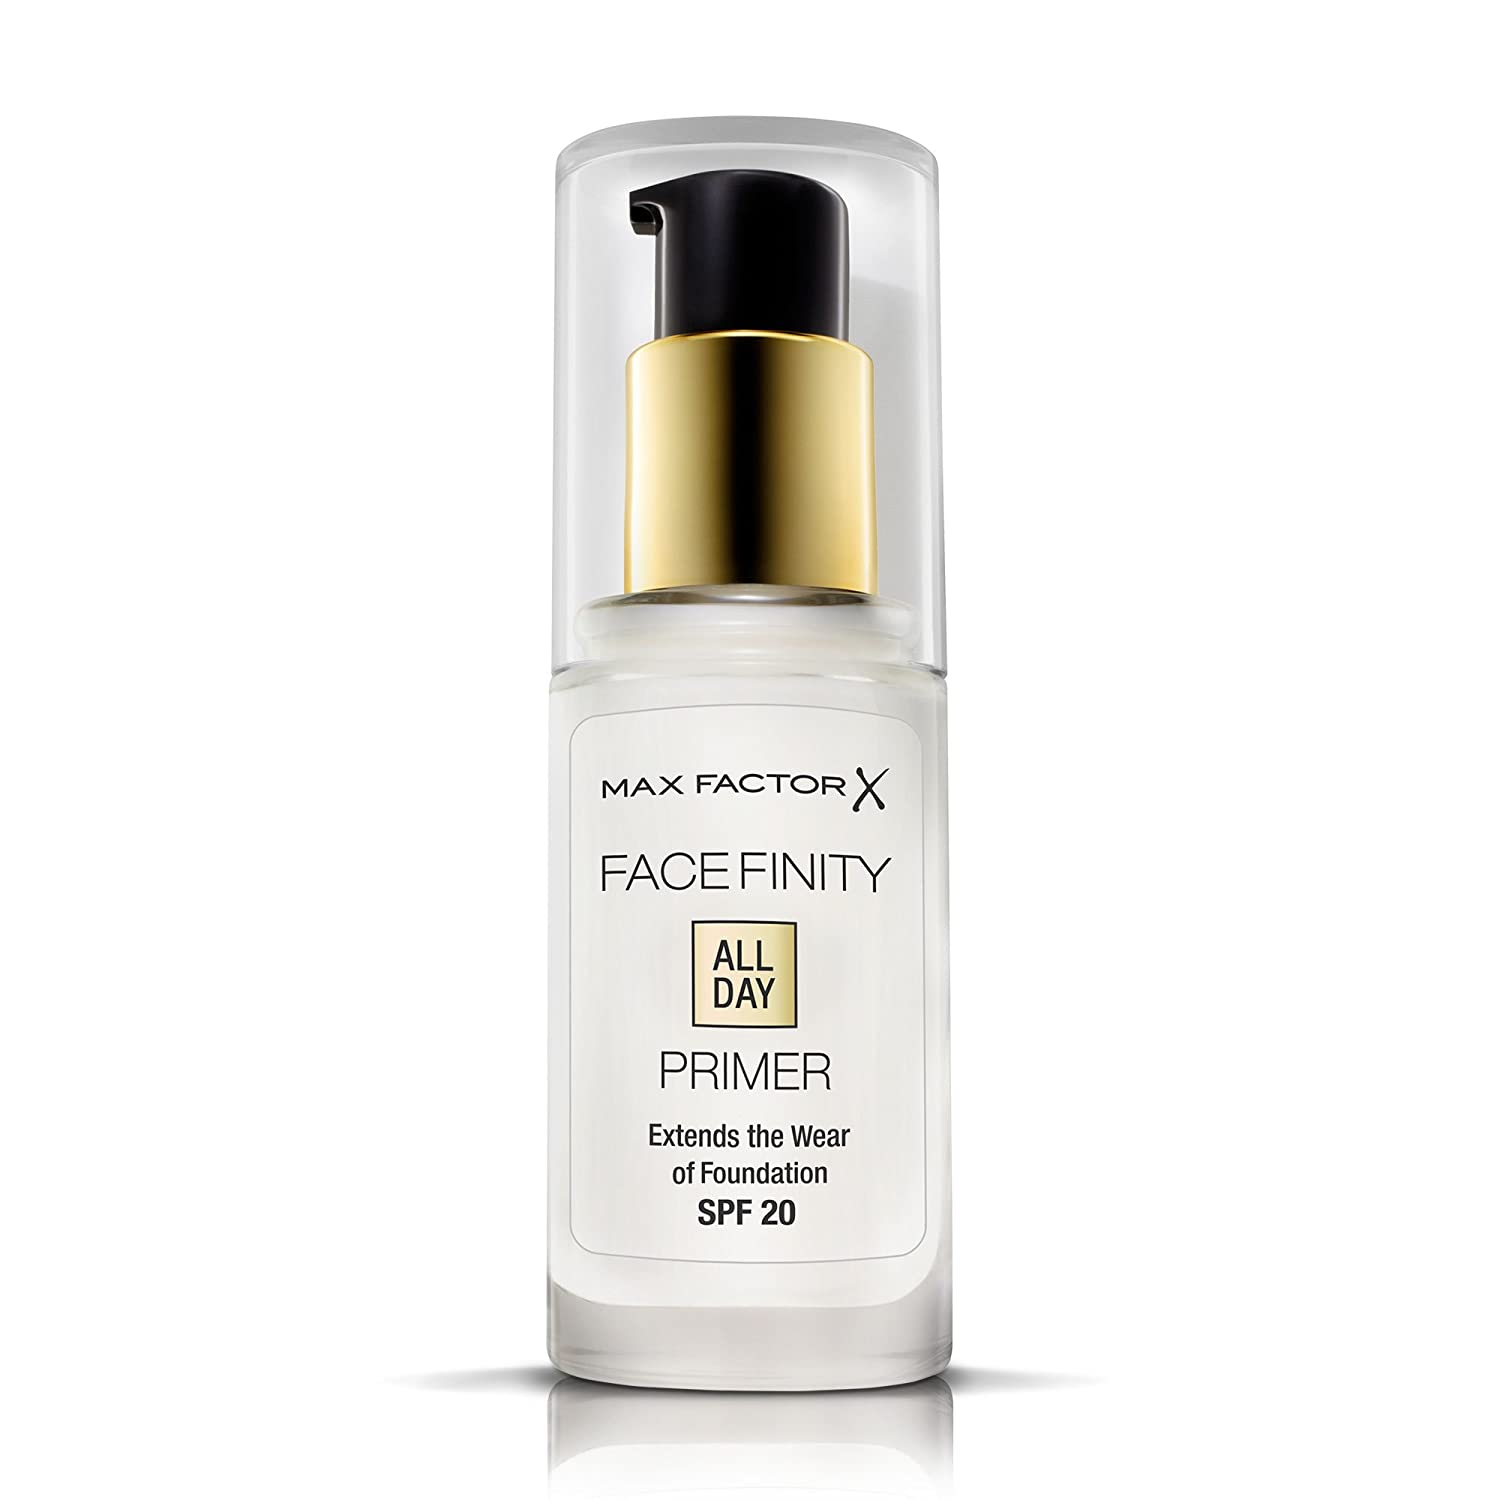 Max Factor Facefinity All Day Primer SPF 20 81464791